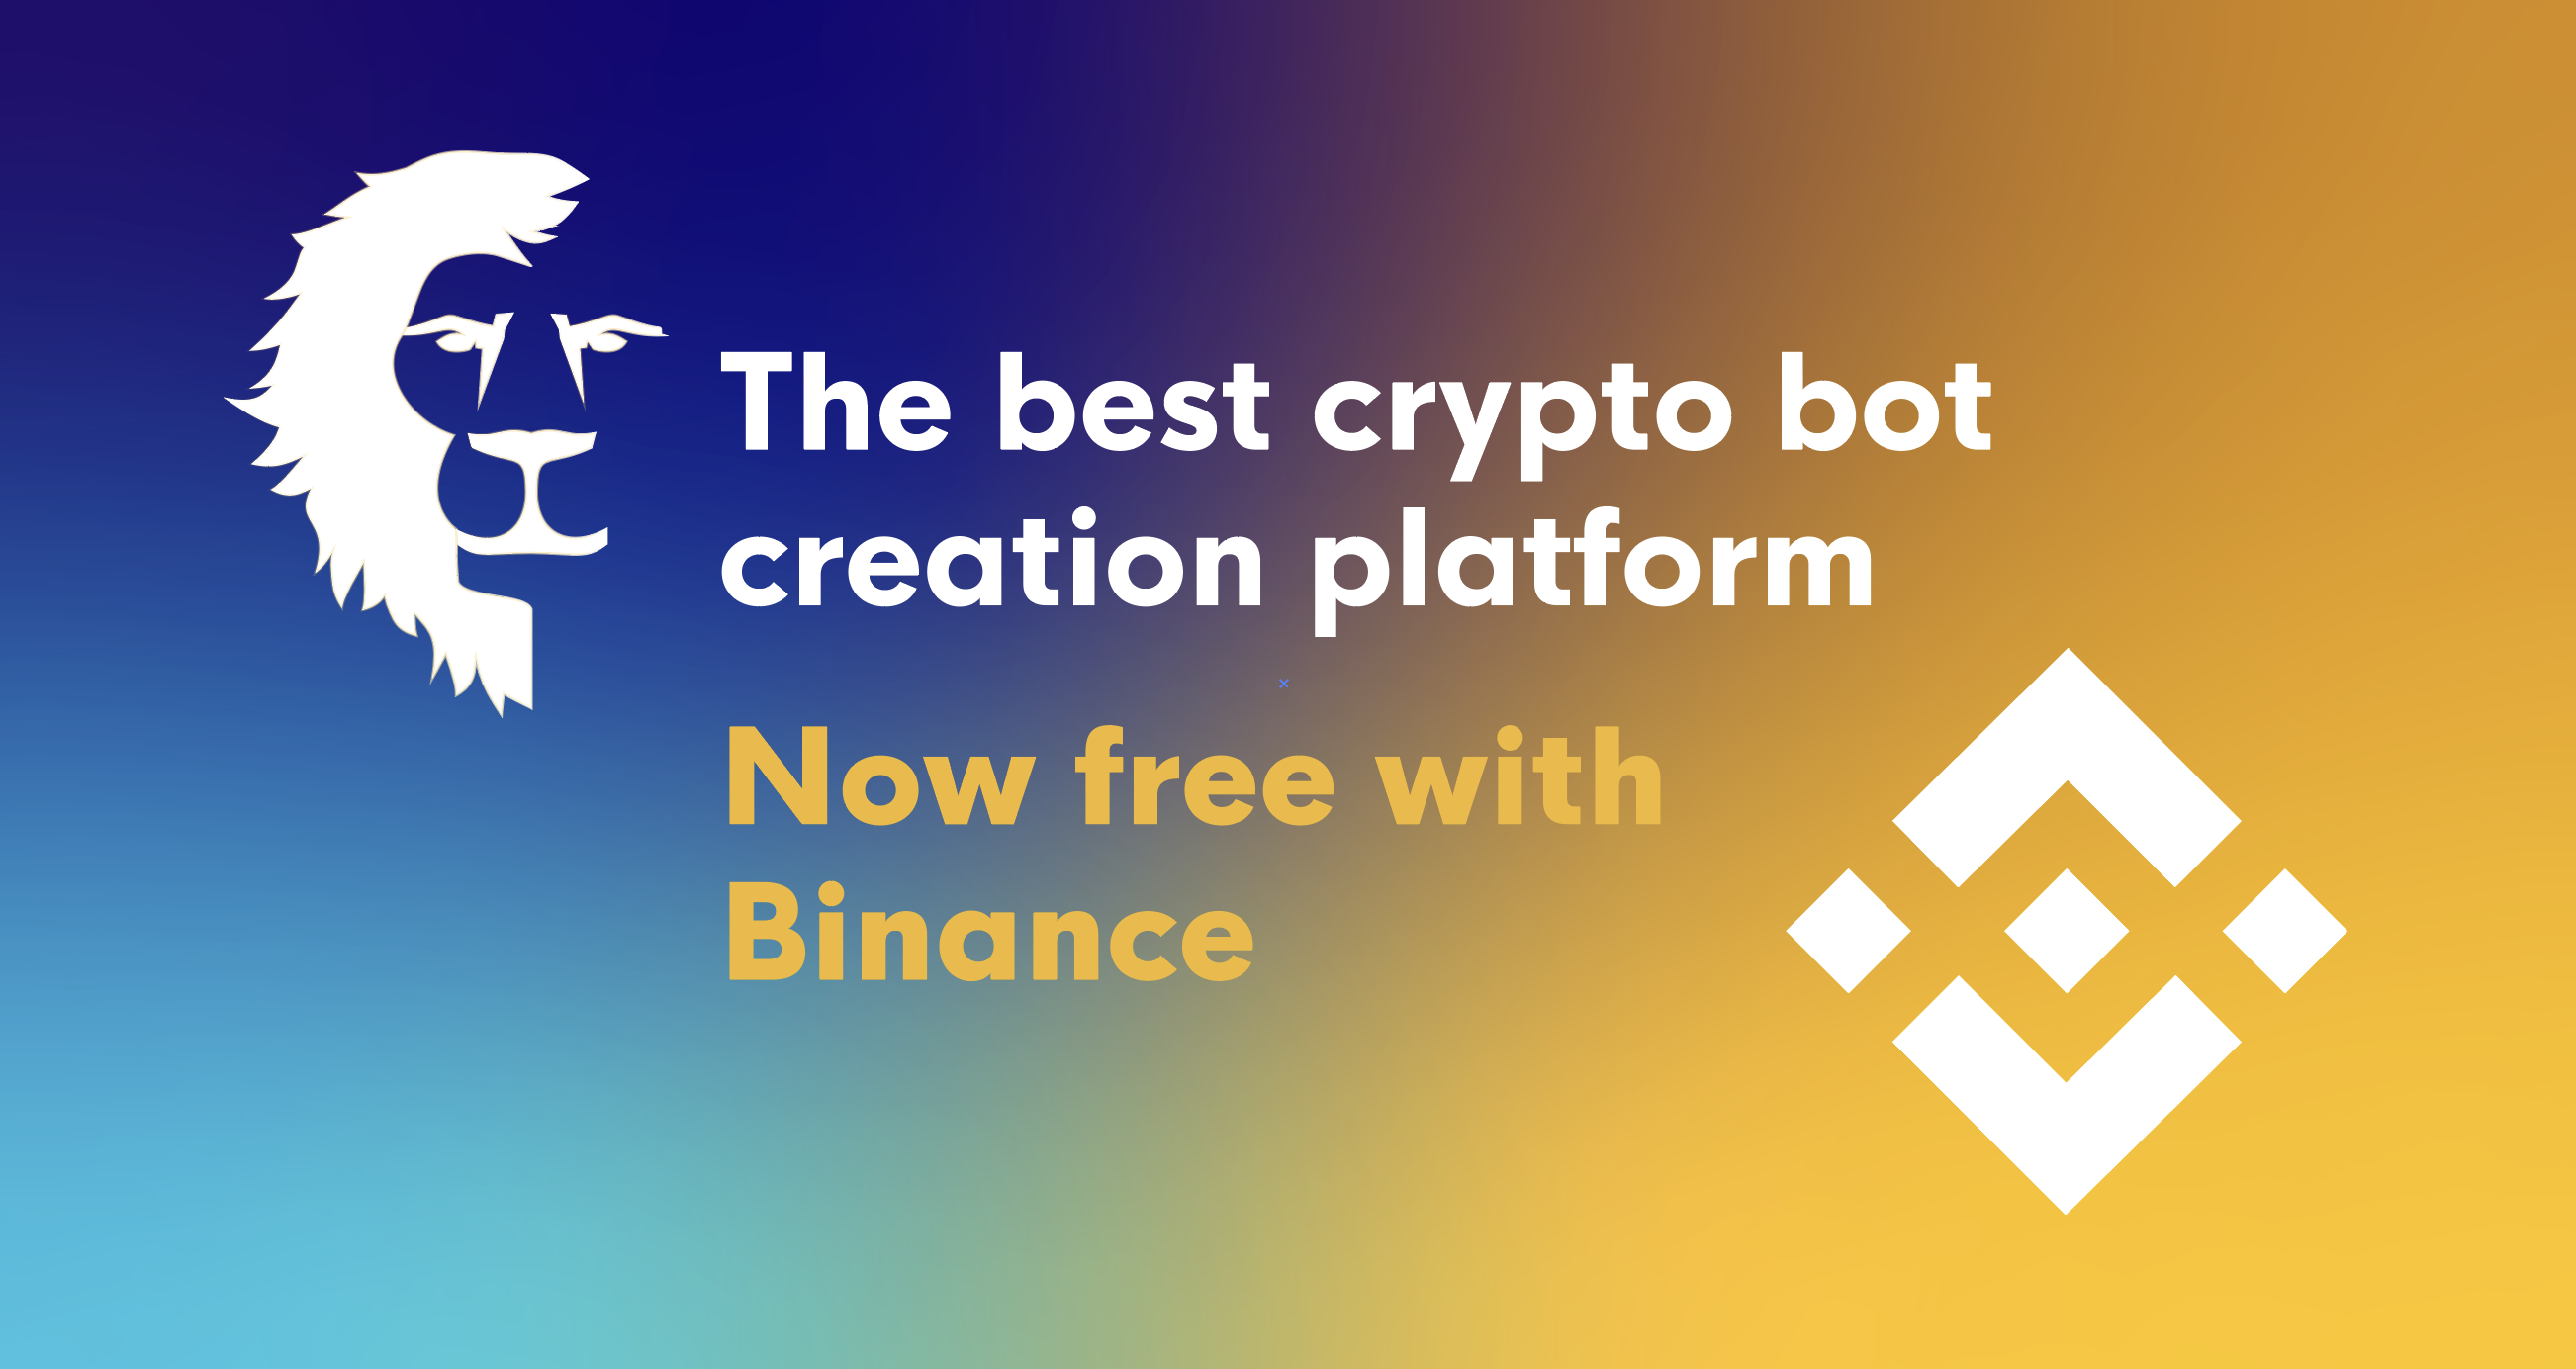 The best crypto bot creation platform